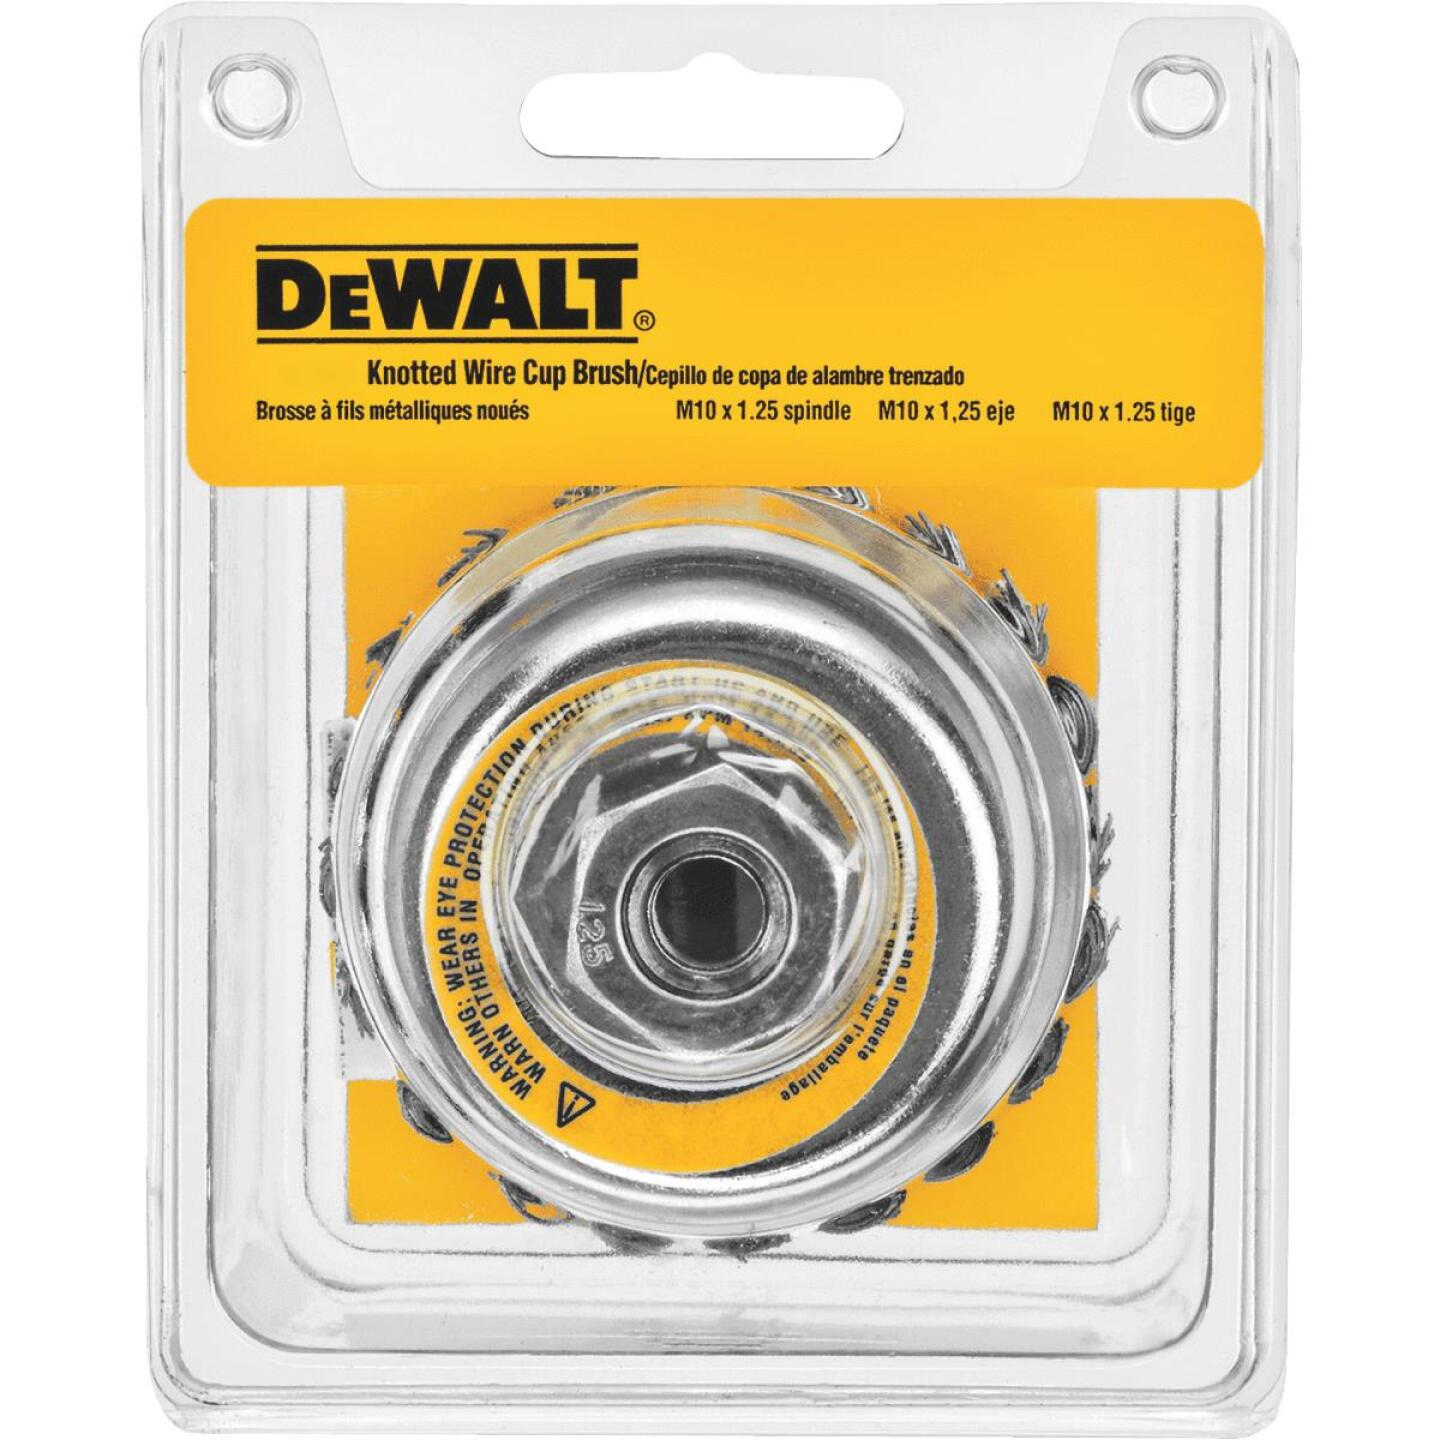 DeWalt 4 In. Knotted 0.020 In. Angle Grinder Wire Brush Image 1